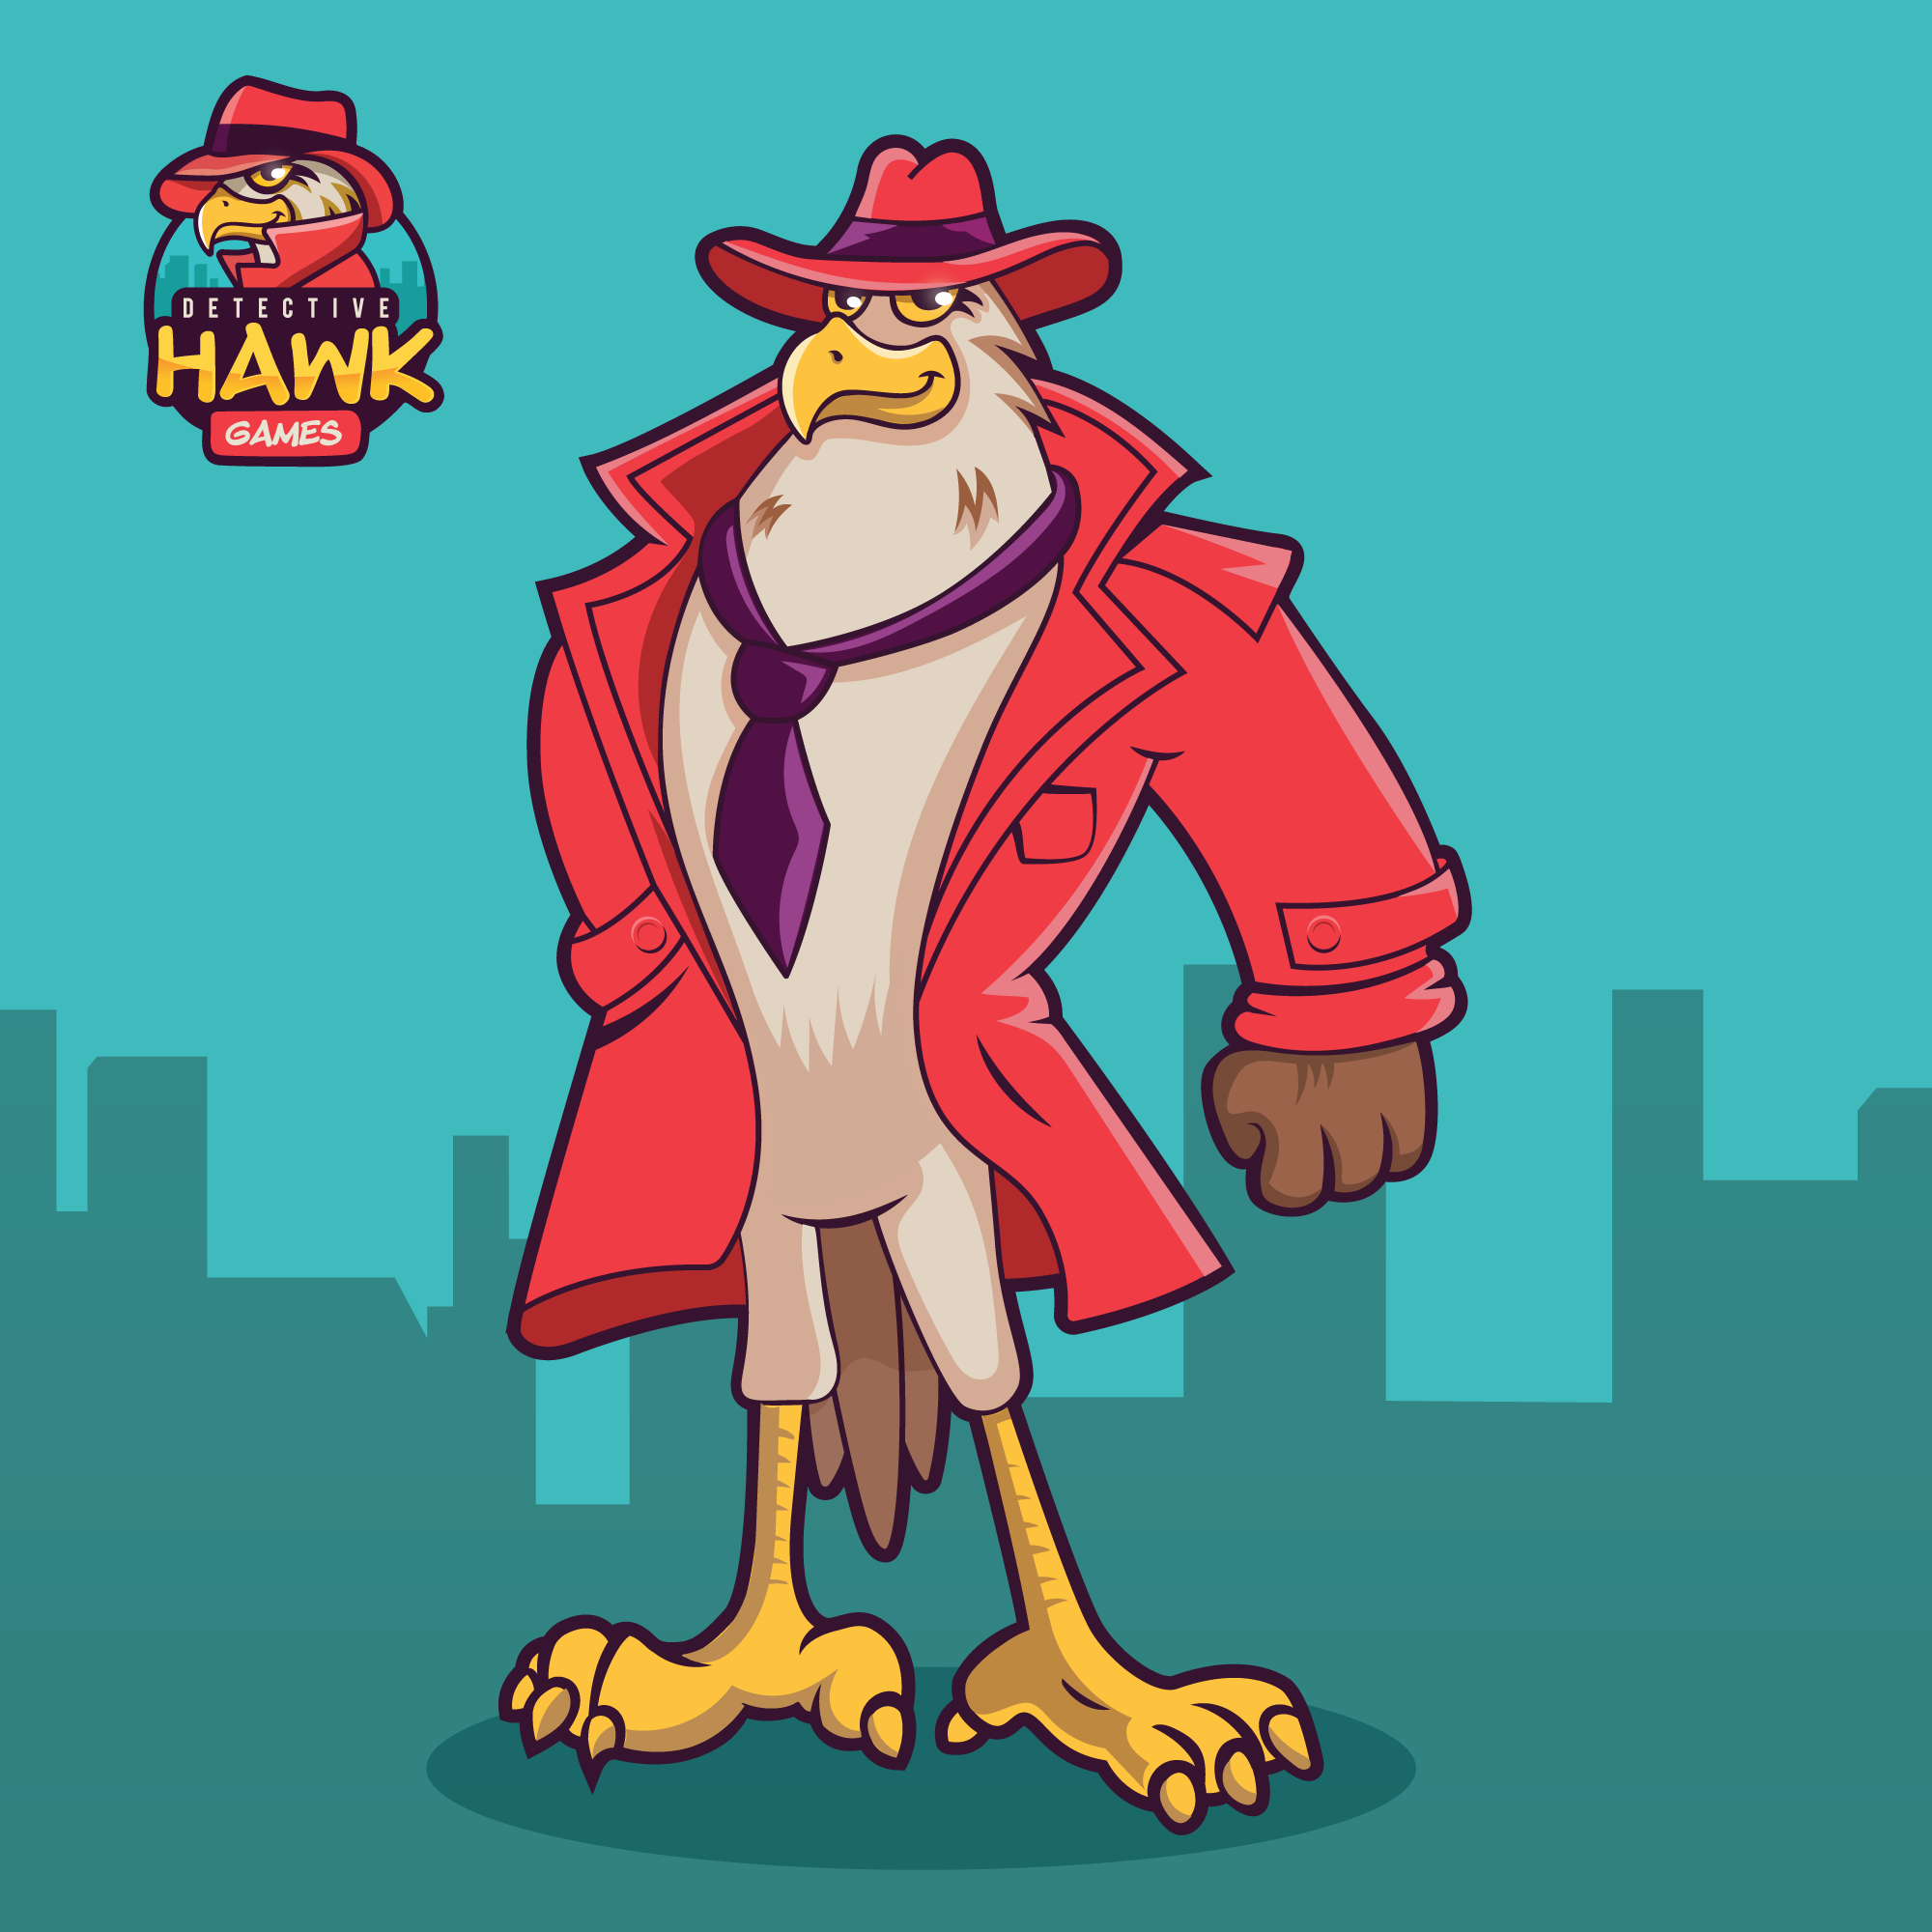 Detective Hawk Character Design and Pose